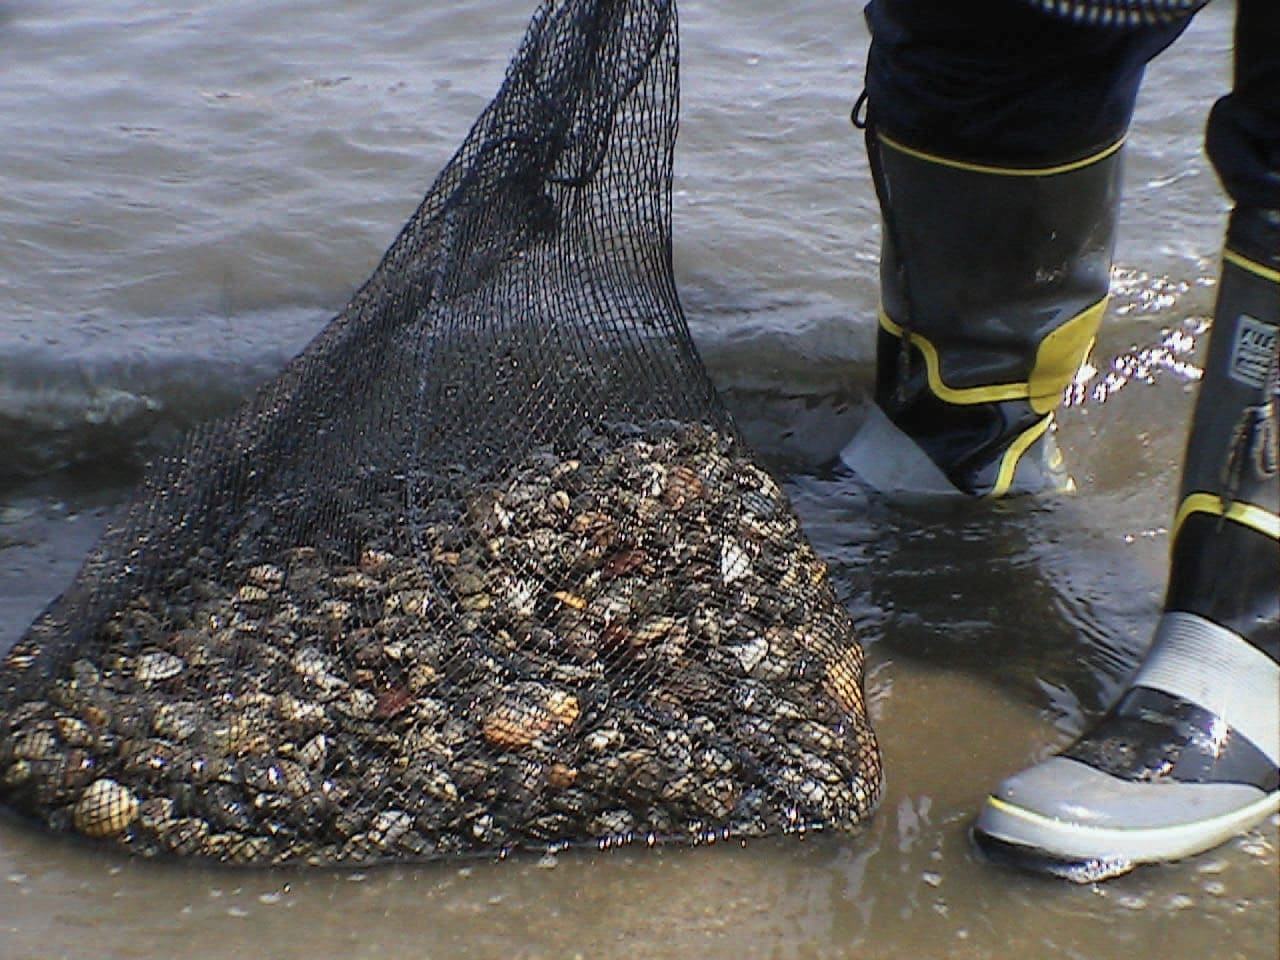 Large catch of clams